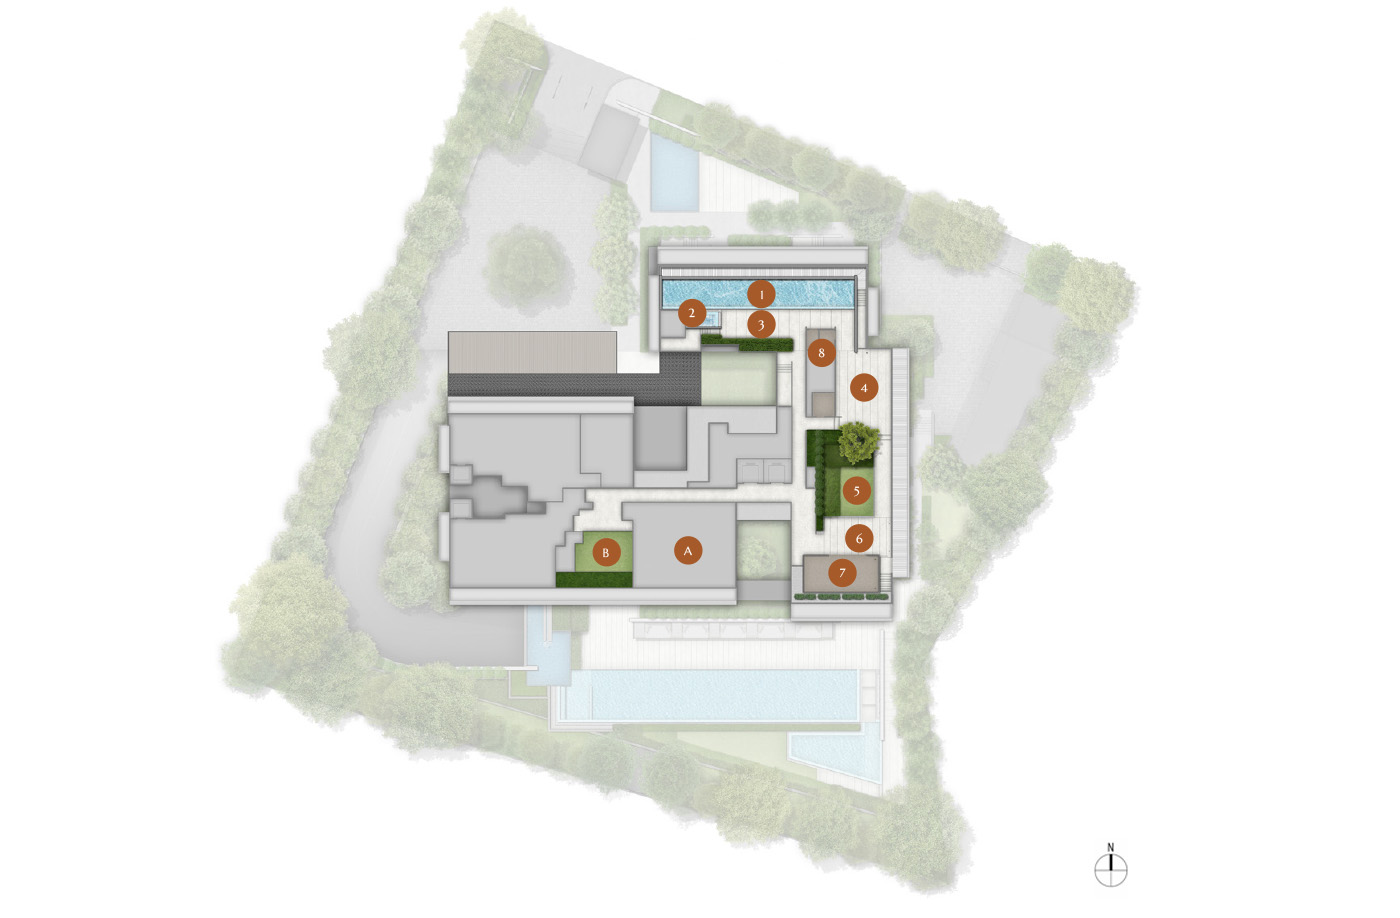 19 nassim, site plan, level 10, roof, facilities